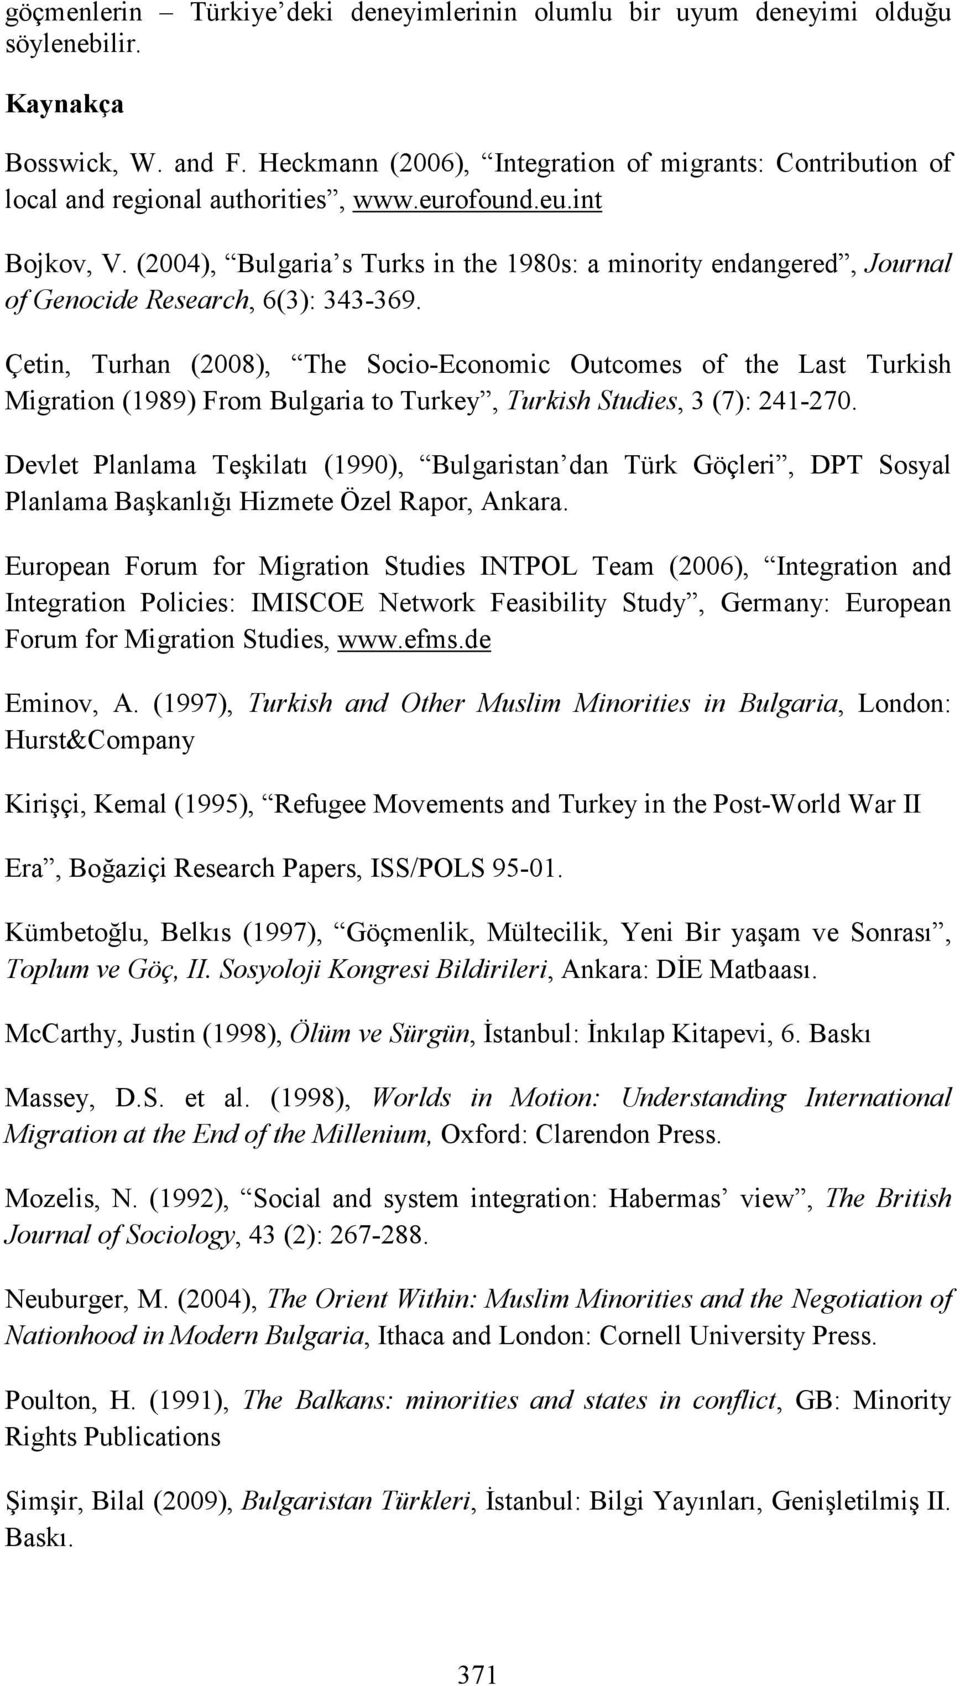 (2004), Bulgaria s Turks in the 1980s: a minority endangered, Journal of Genocide Research, 6(3): 343-369.